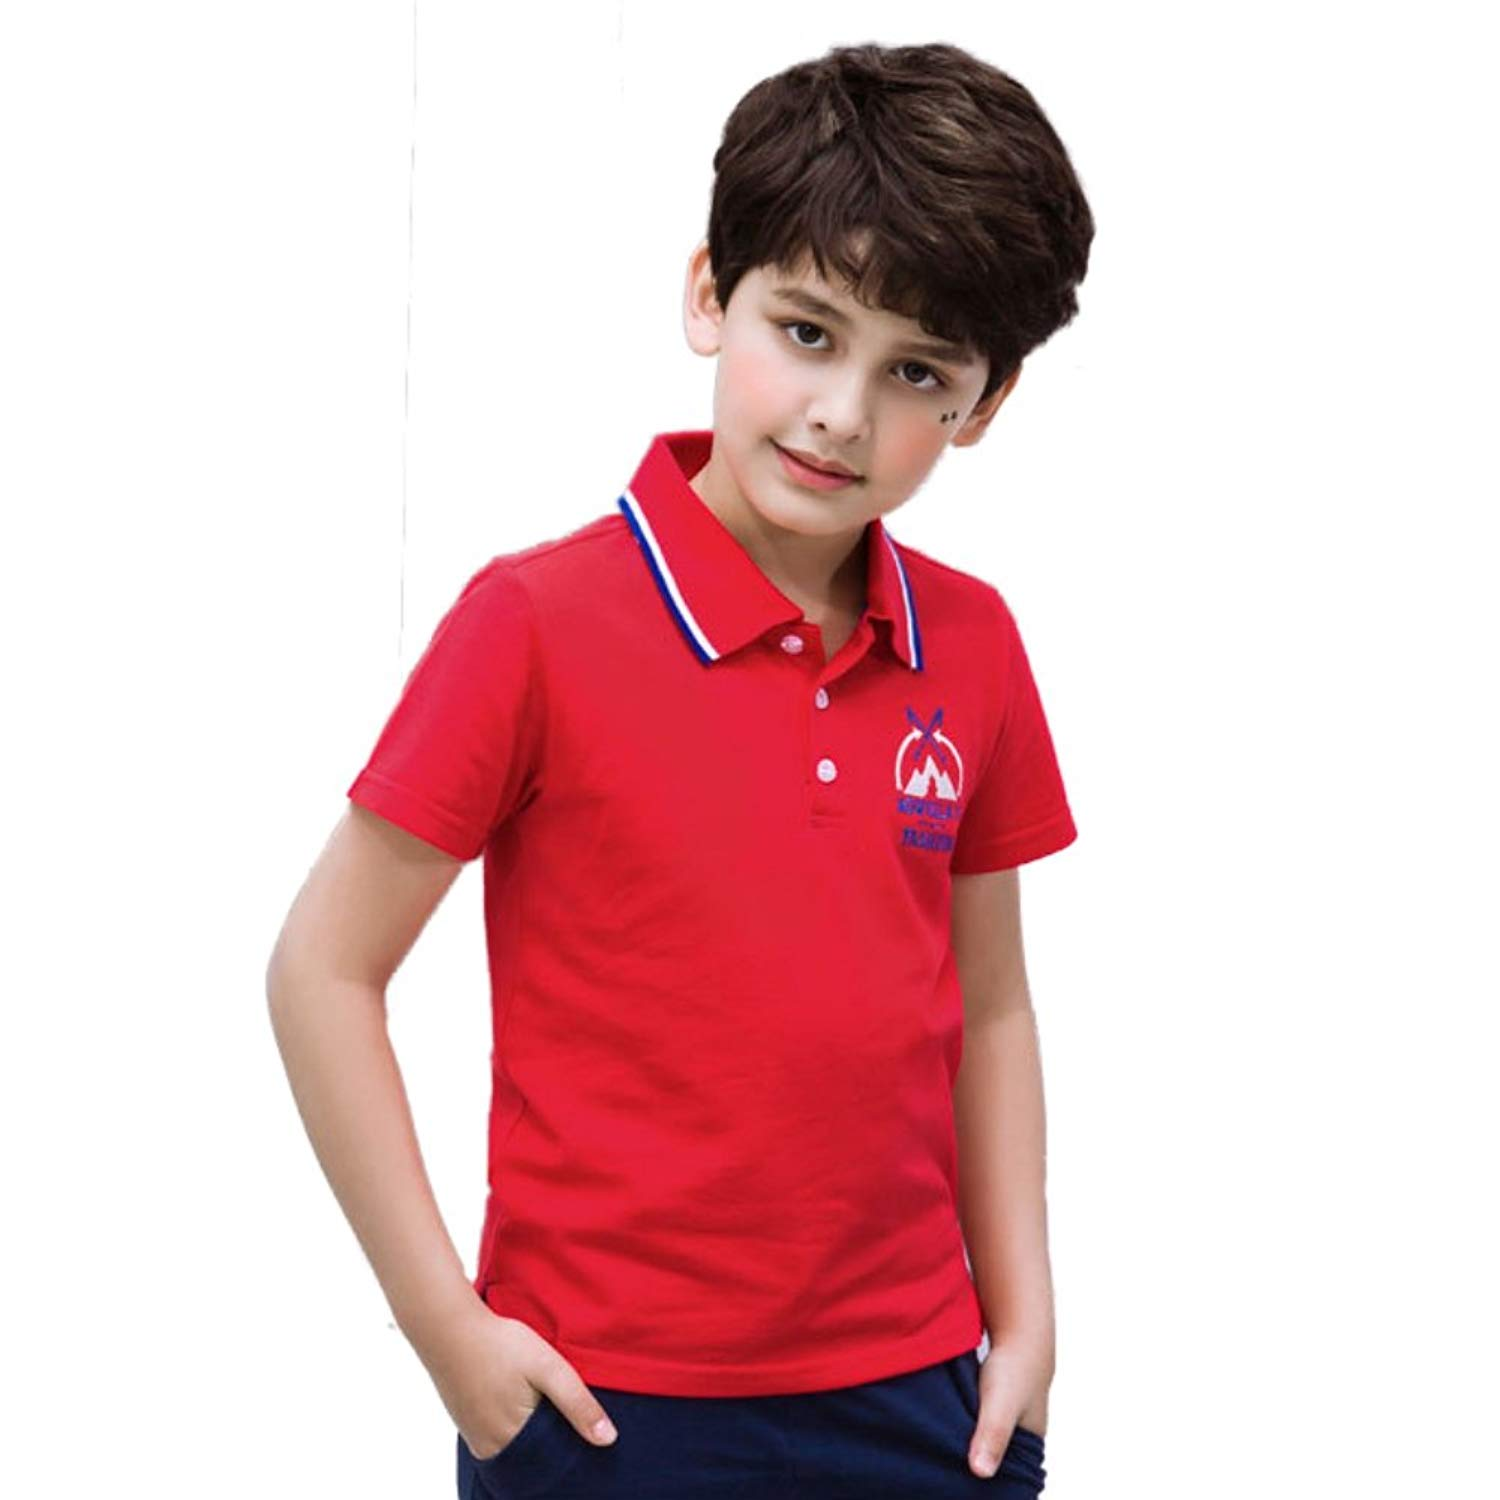 Cheap Plain Polo Shirts For Kids Find Plain Polo Shirts For Kids